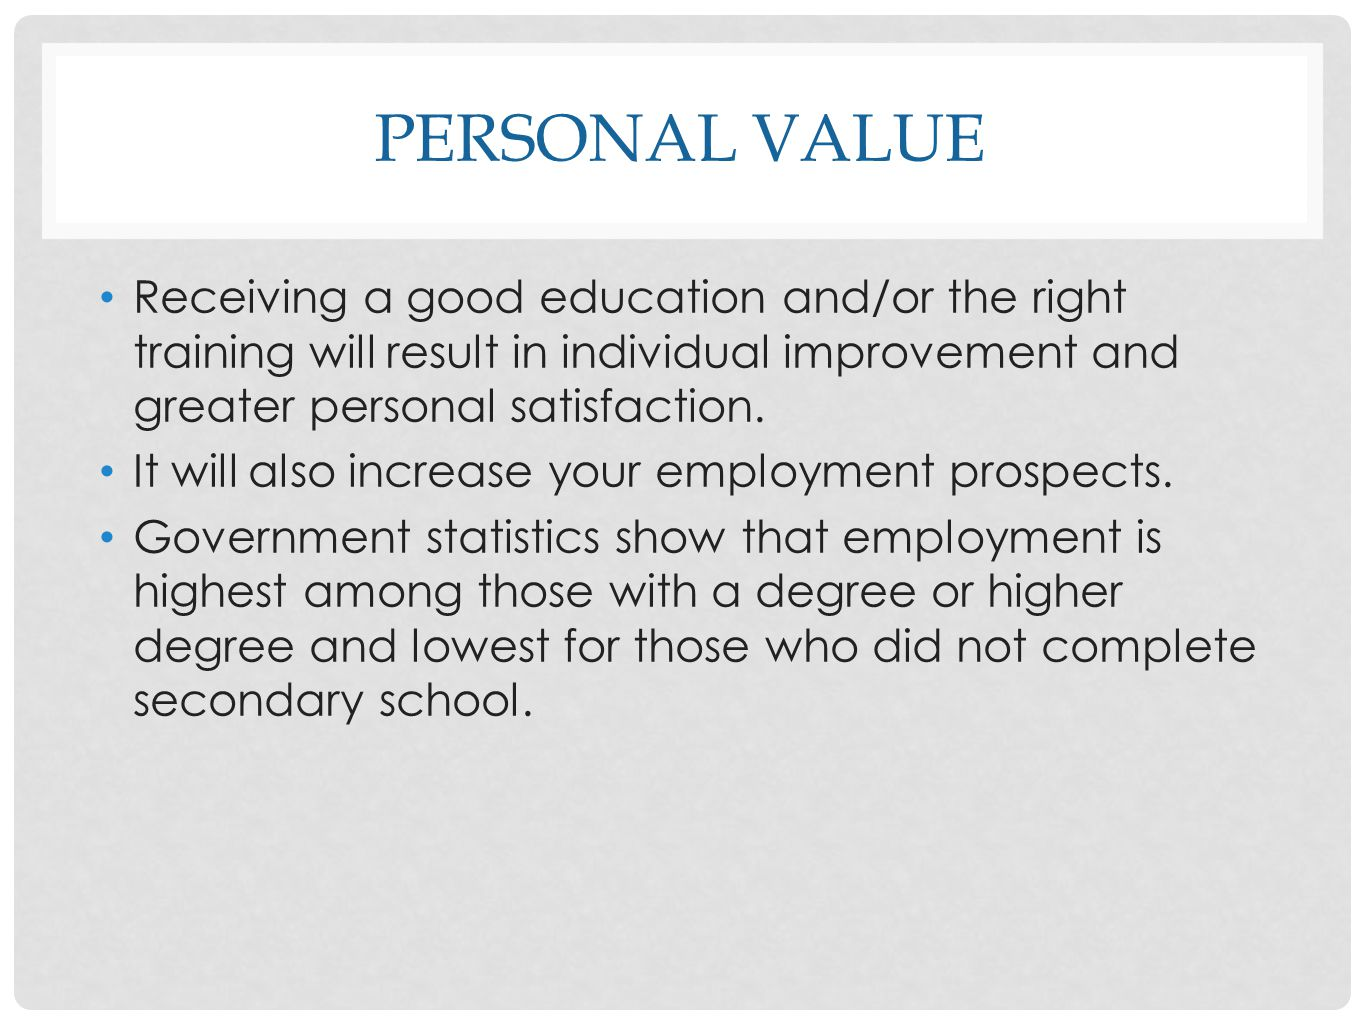 Personal value Receiving a good education and/or the right training will result in individual improvement and greater personal satisfaction.